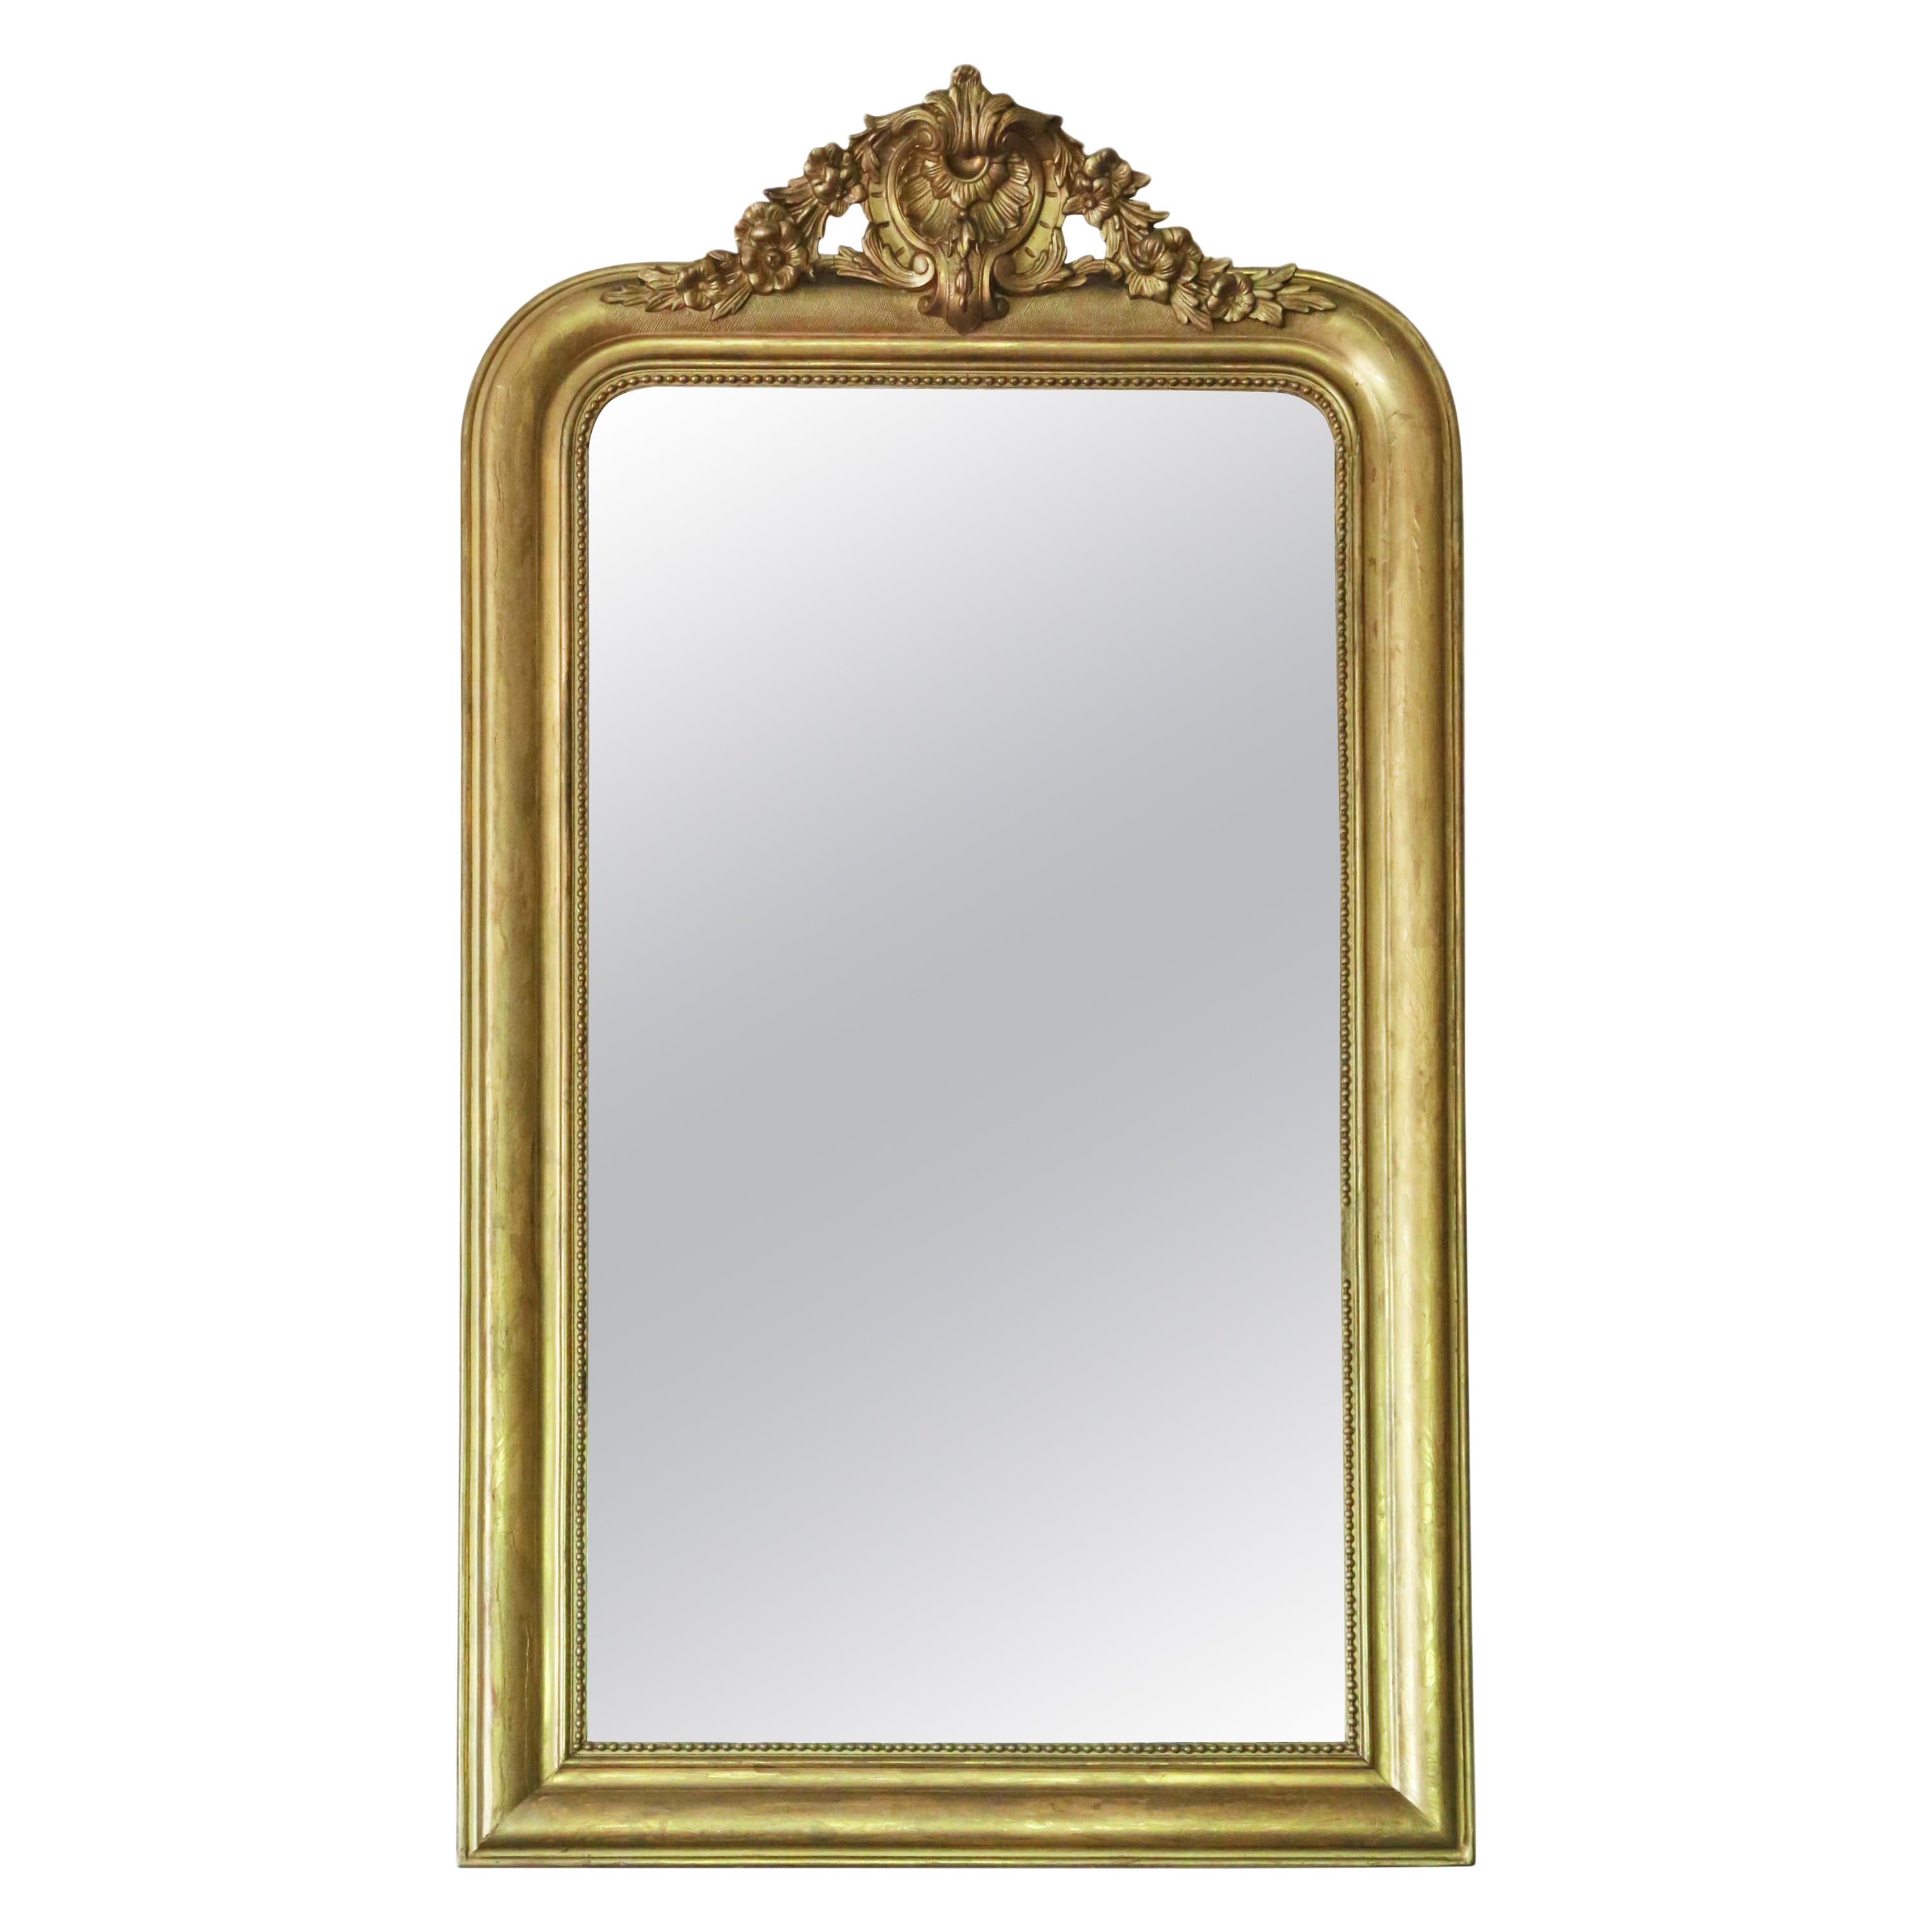 Antique Large Gilt 19th Century Overmantle Wall Mirror